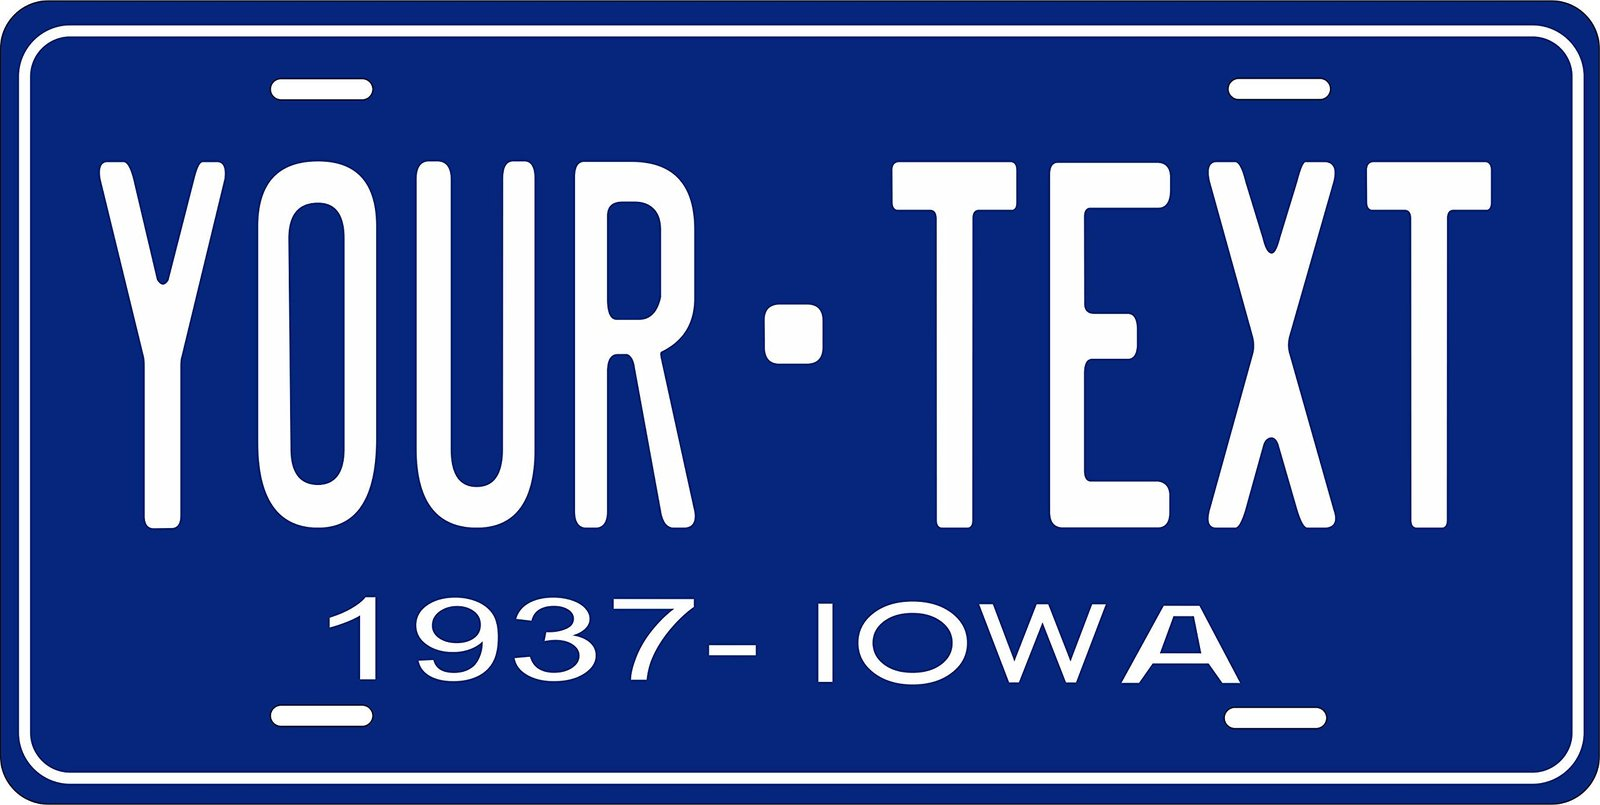 Iowa 1937 Personalized Tag Vehicle Car Auto License Plate